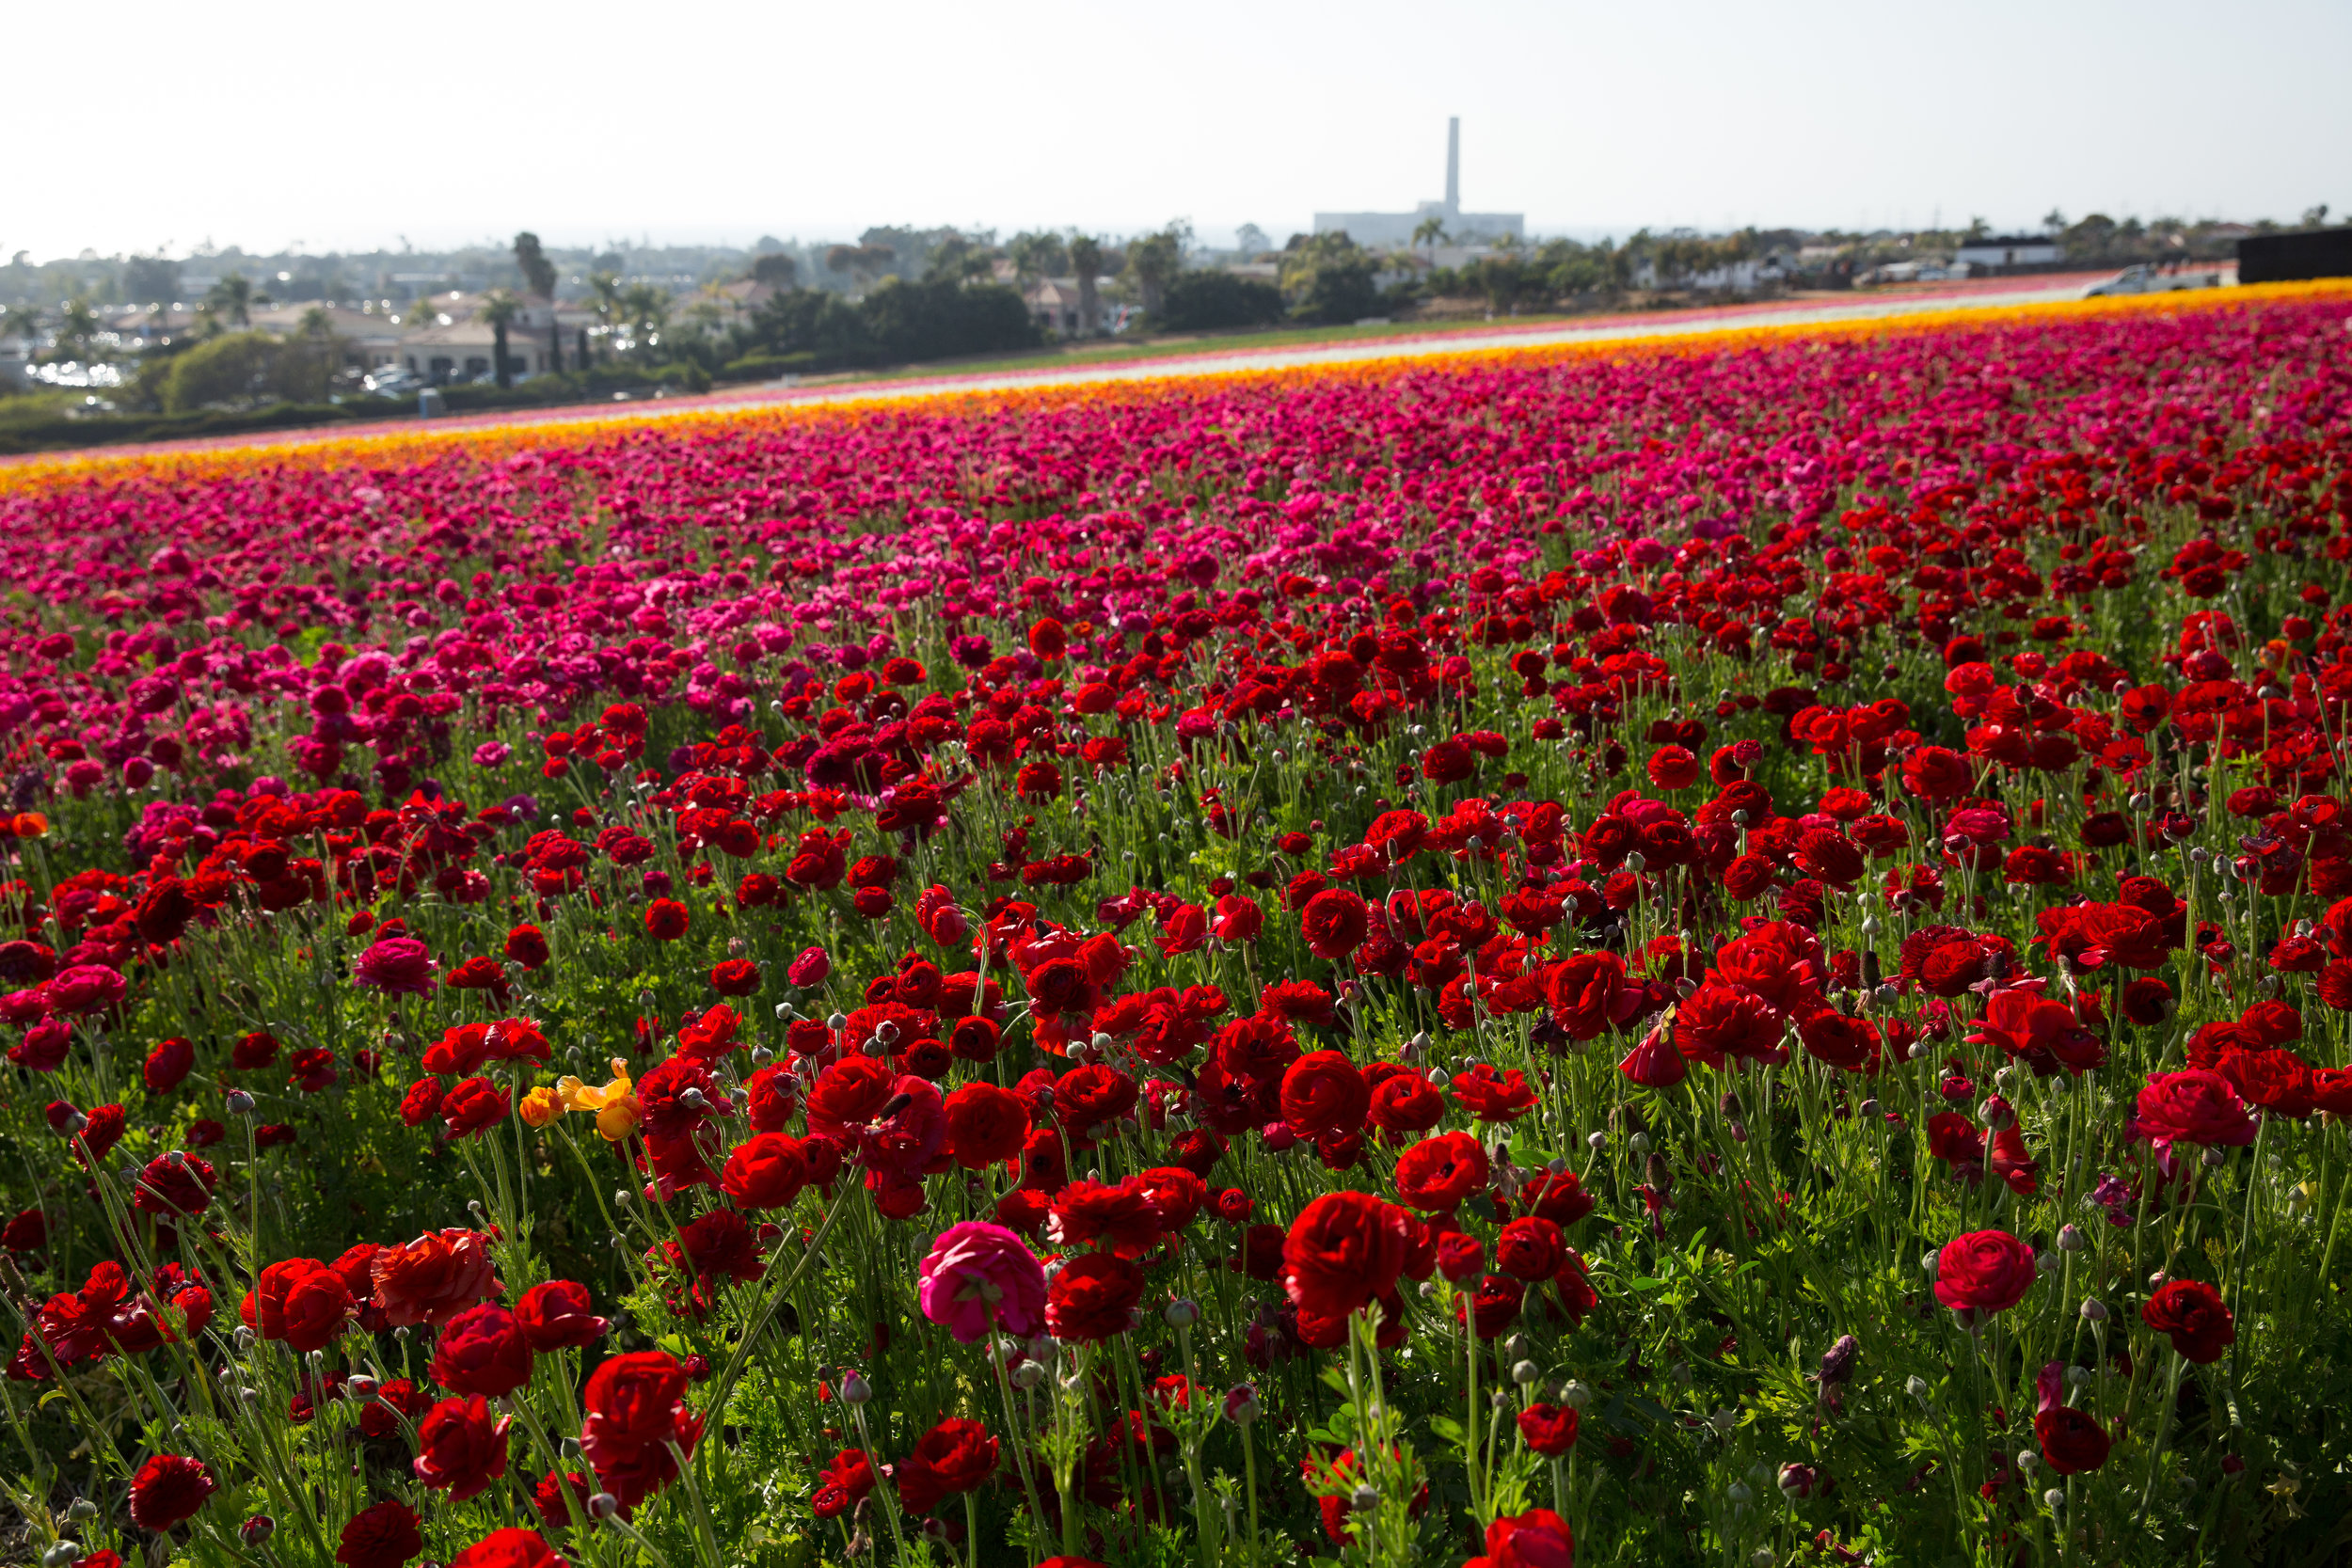 FLOWER_FIELDS-59.jpg